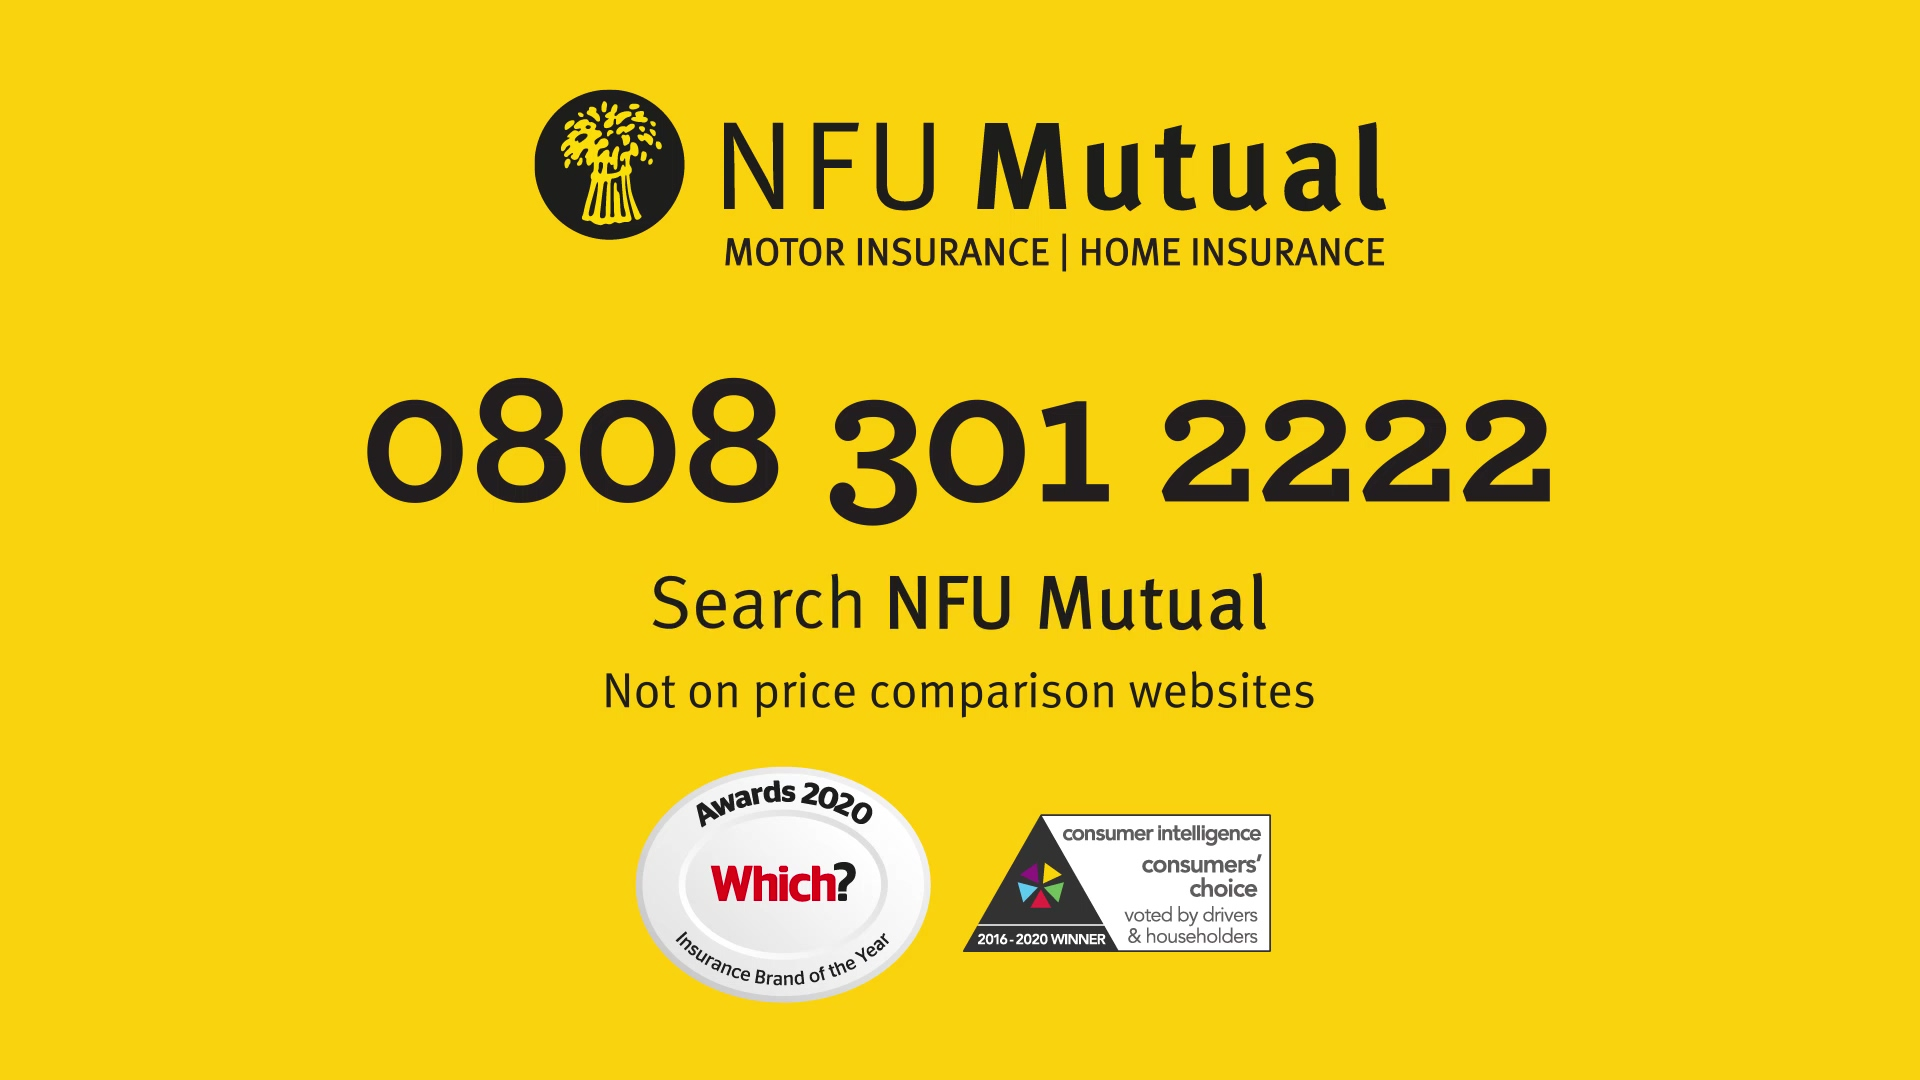 HHP-NFOD103-010_NFU Mutual_Our Difference_TVC_2020_SoD Update_10s_ONLINE_V2